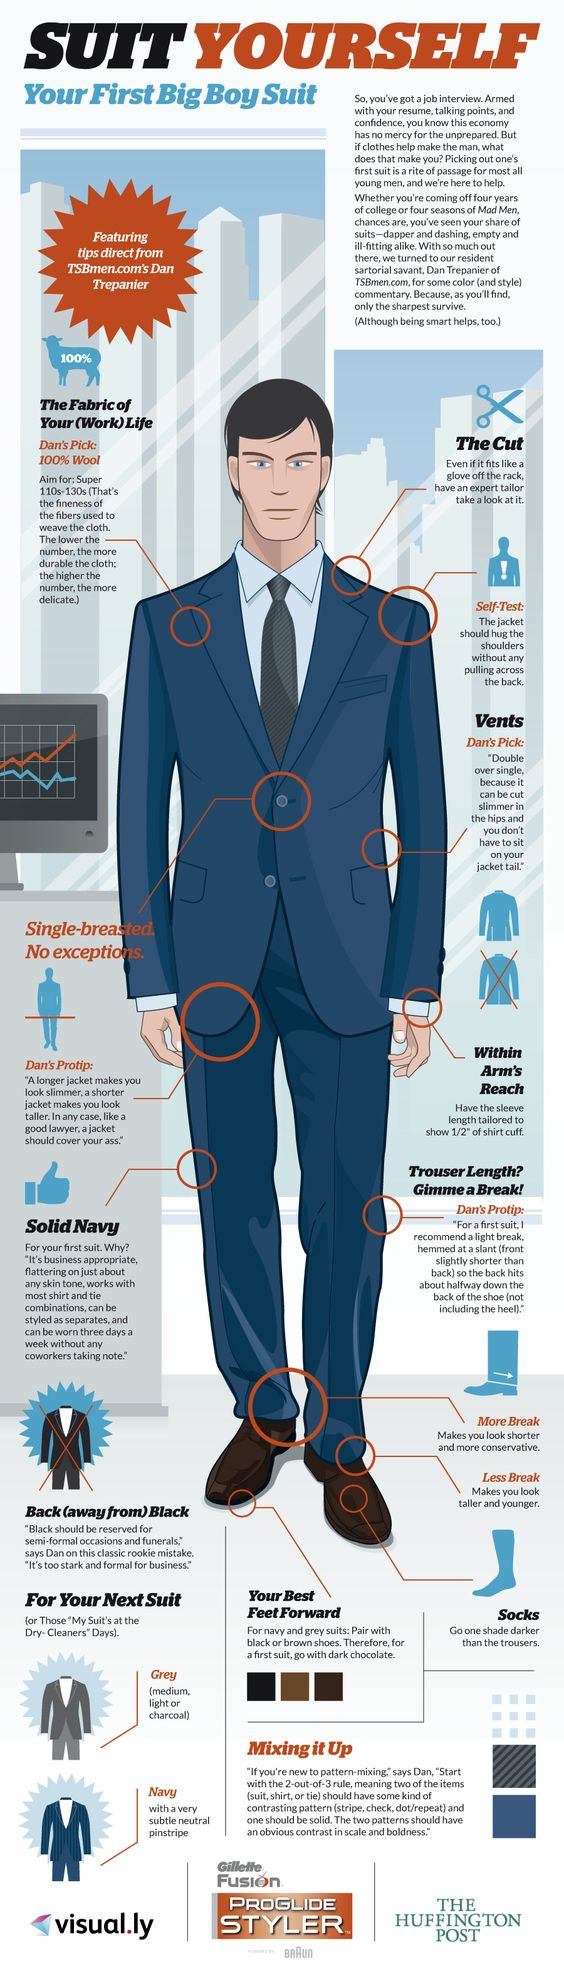 do make sure your clothes fit suit yourself your first big boy proper interview attire this article explains all the basics of what you should wear to look professional for an interview the better that you look the